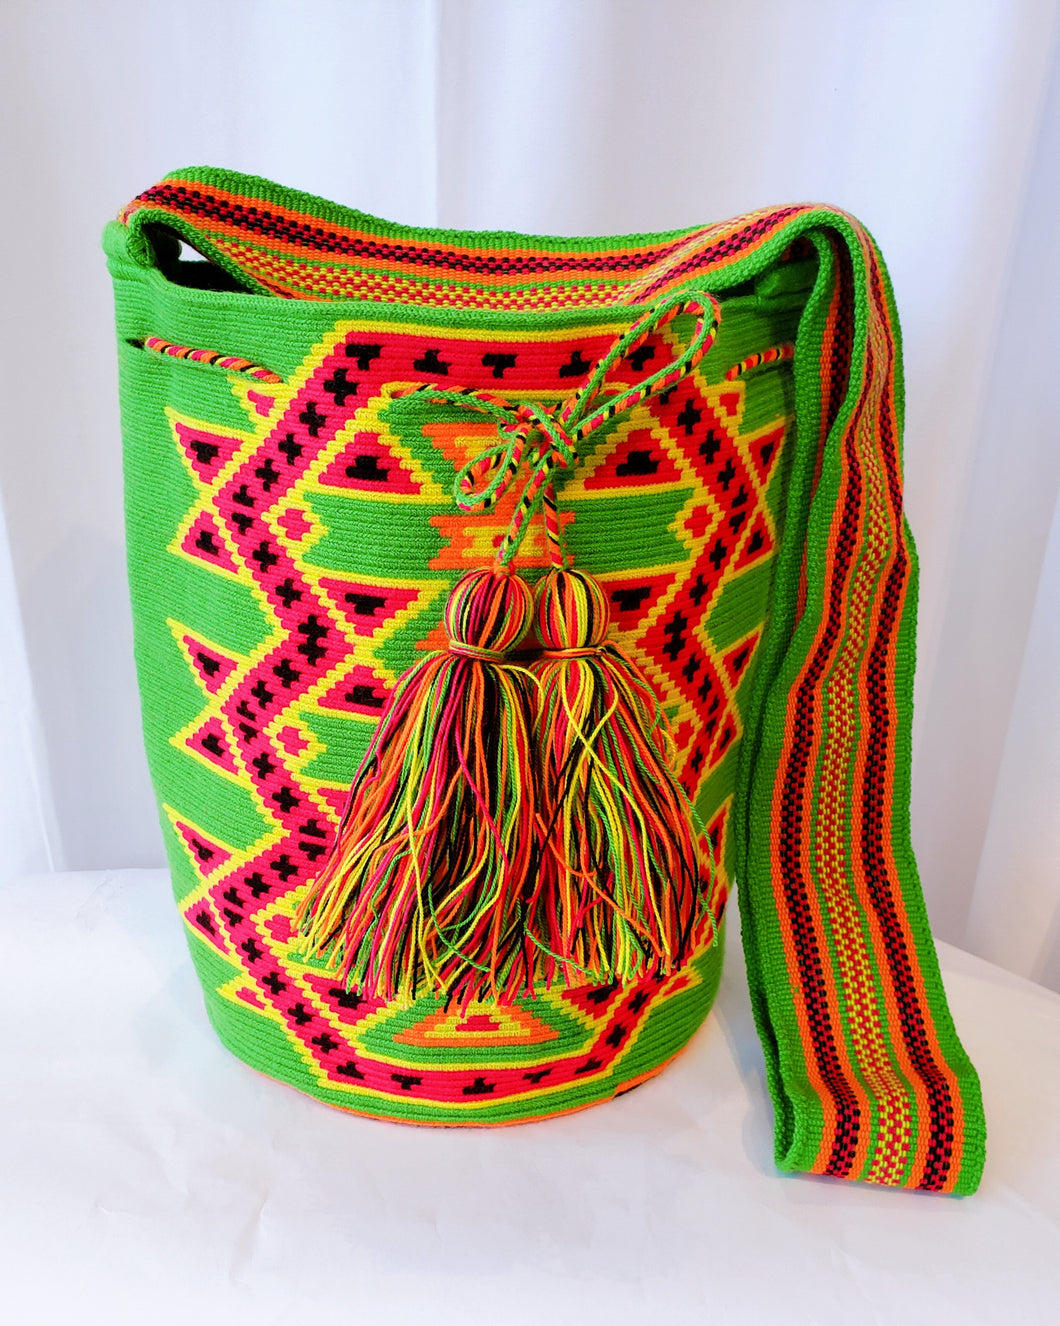 Jo One-Thread Handmade Wayuu Mochila bag - Wuitusu